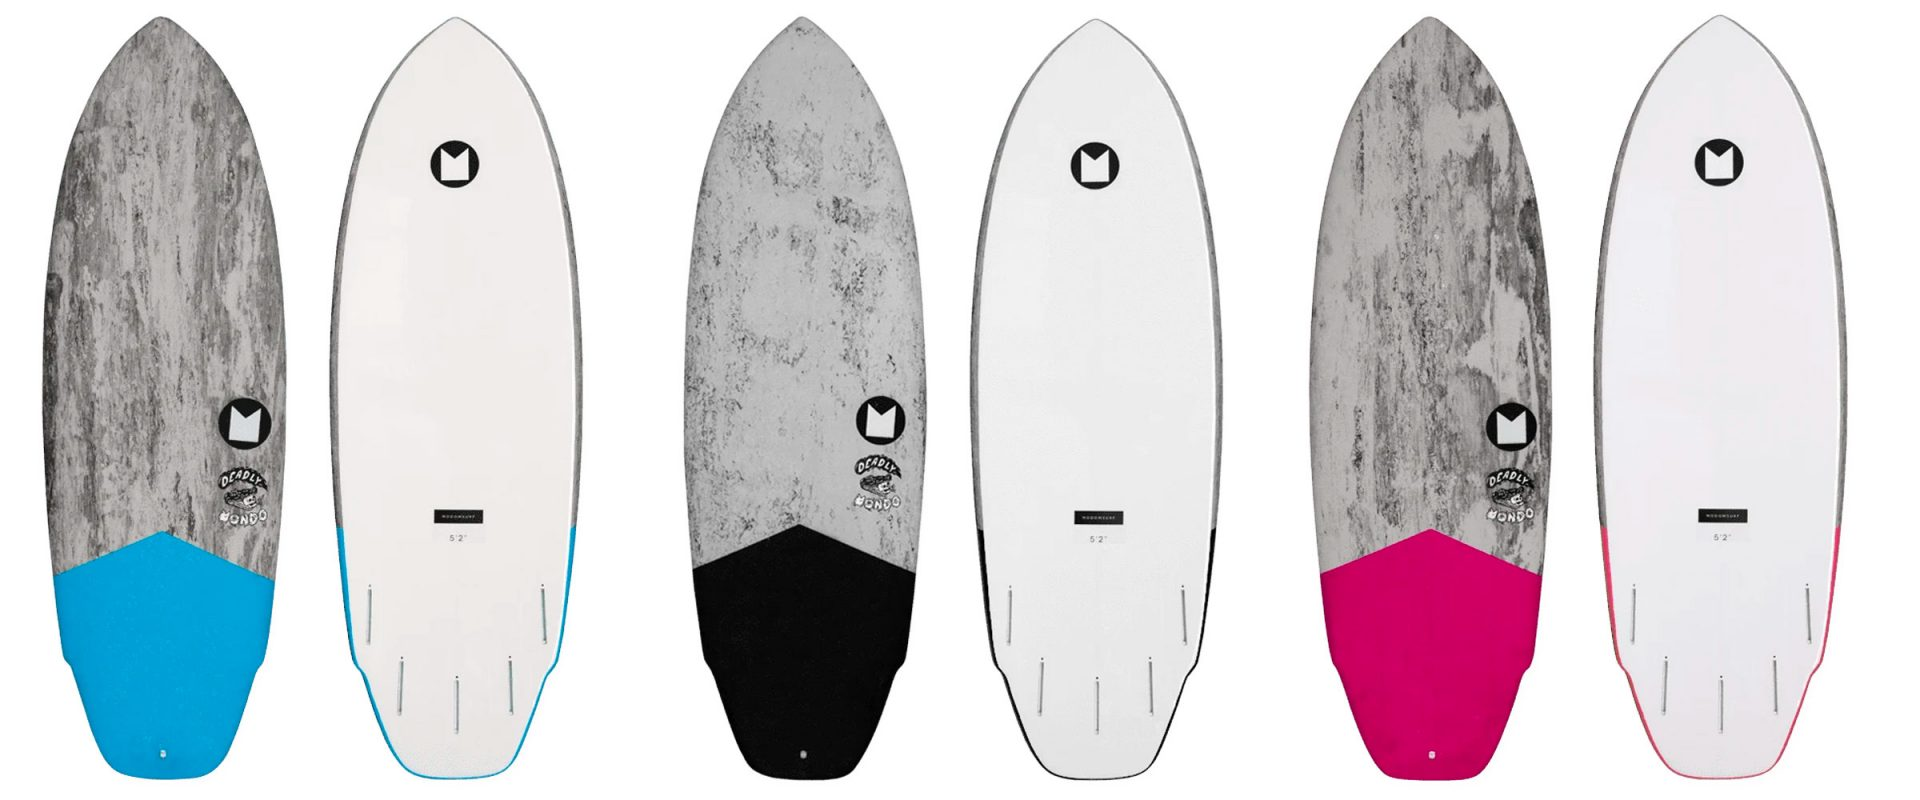 the best surfboards for kids - modom deadly mondo